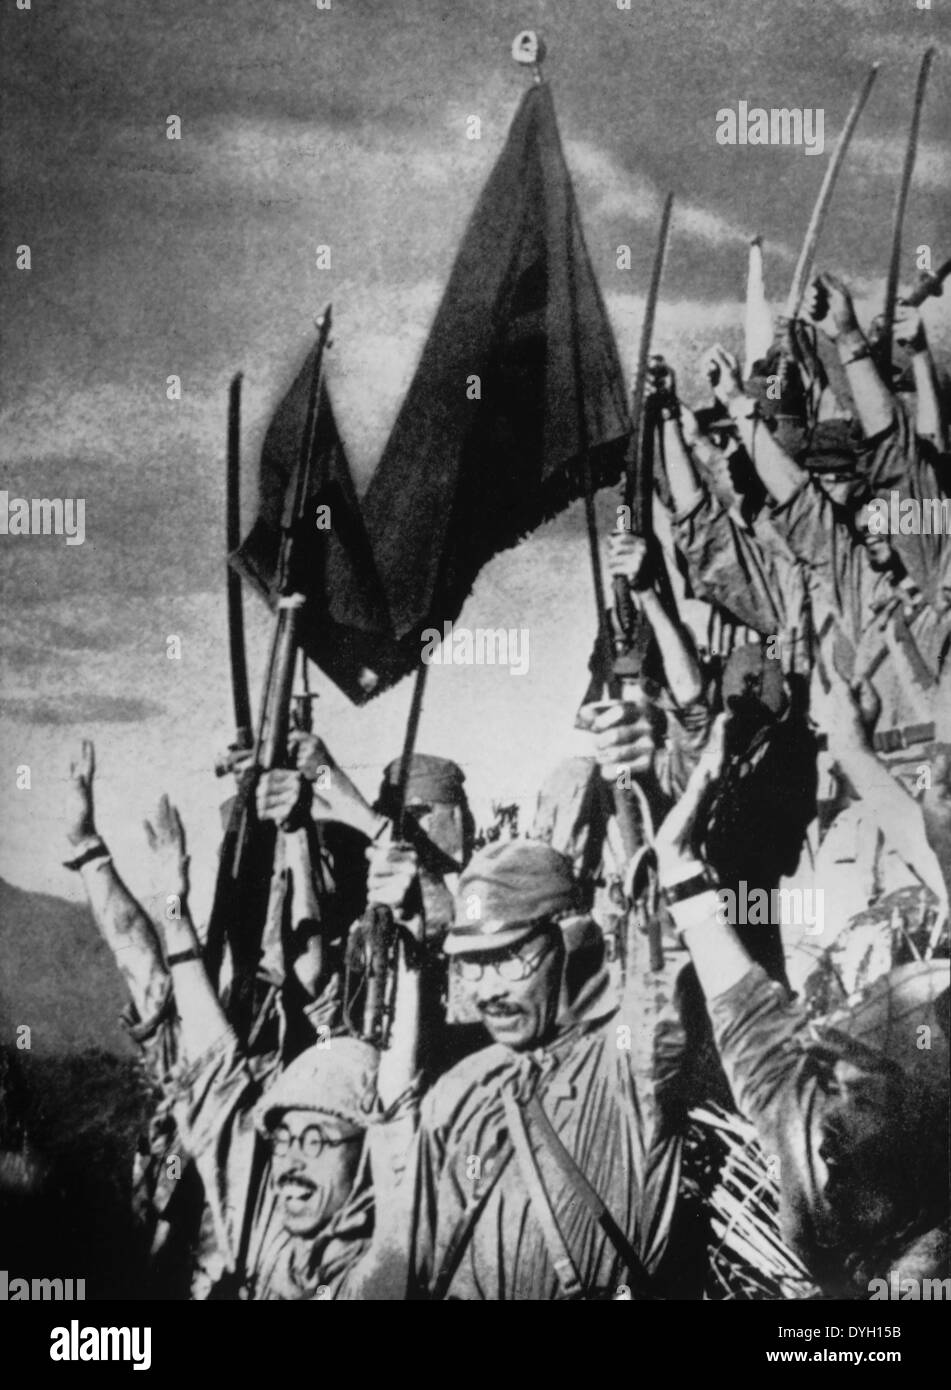 Victorious Japanese Troops after Invasion of Manchuria, circa 1931 - Stock Image